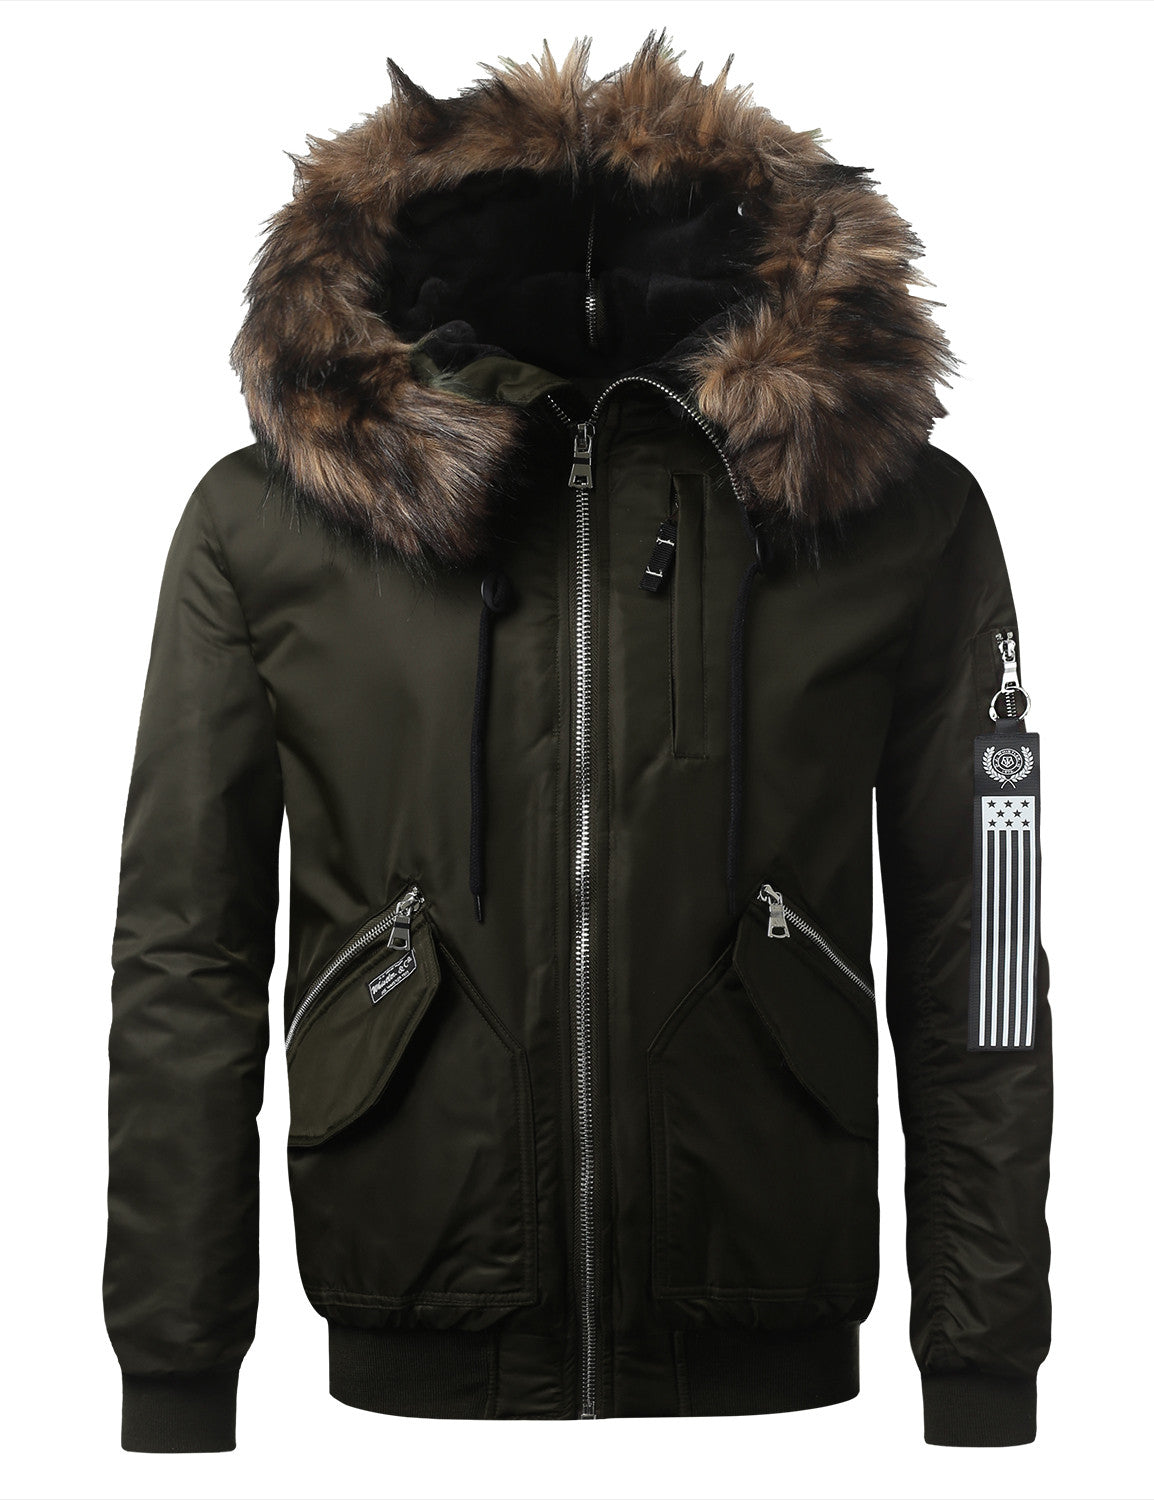 OLIVE Bomber Jacket w/ Faux Fur Hood - URBANCREWS